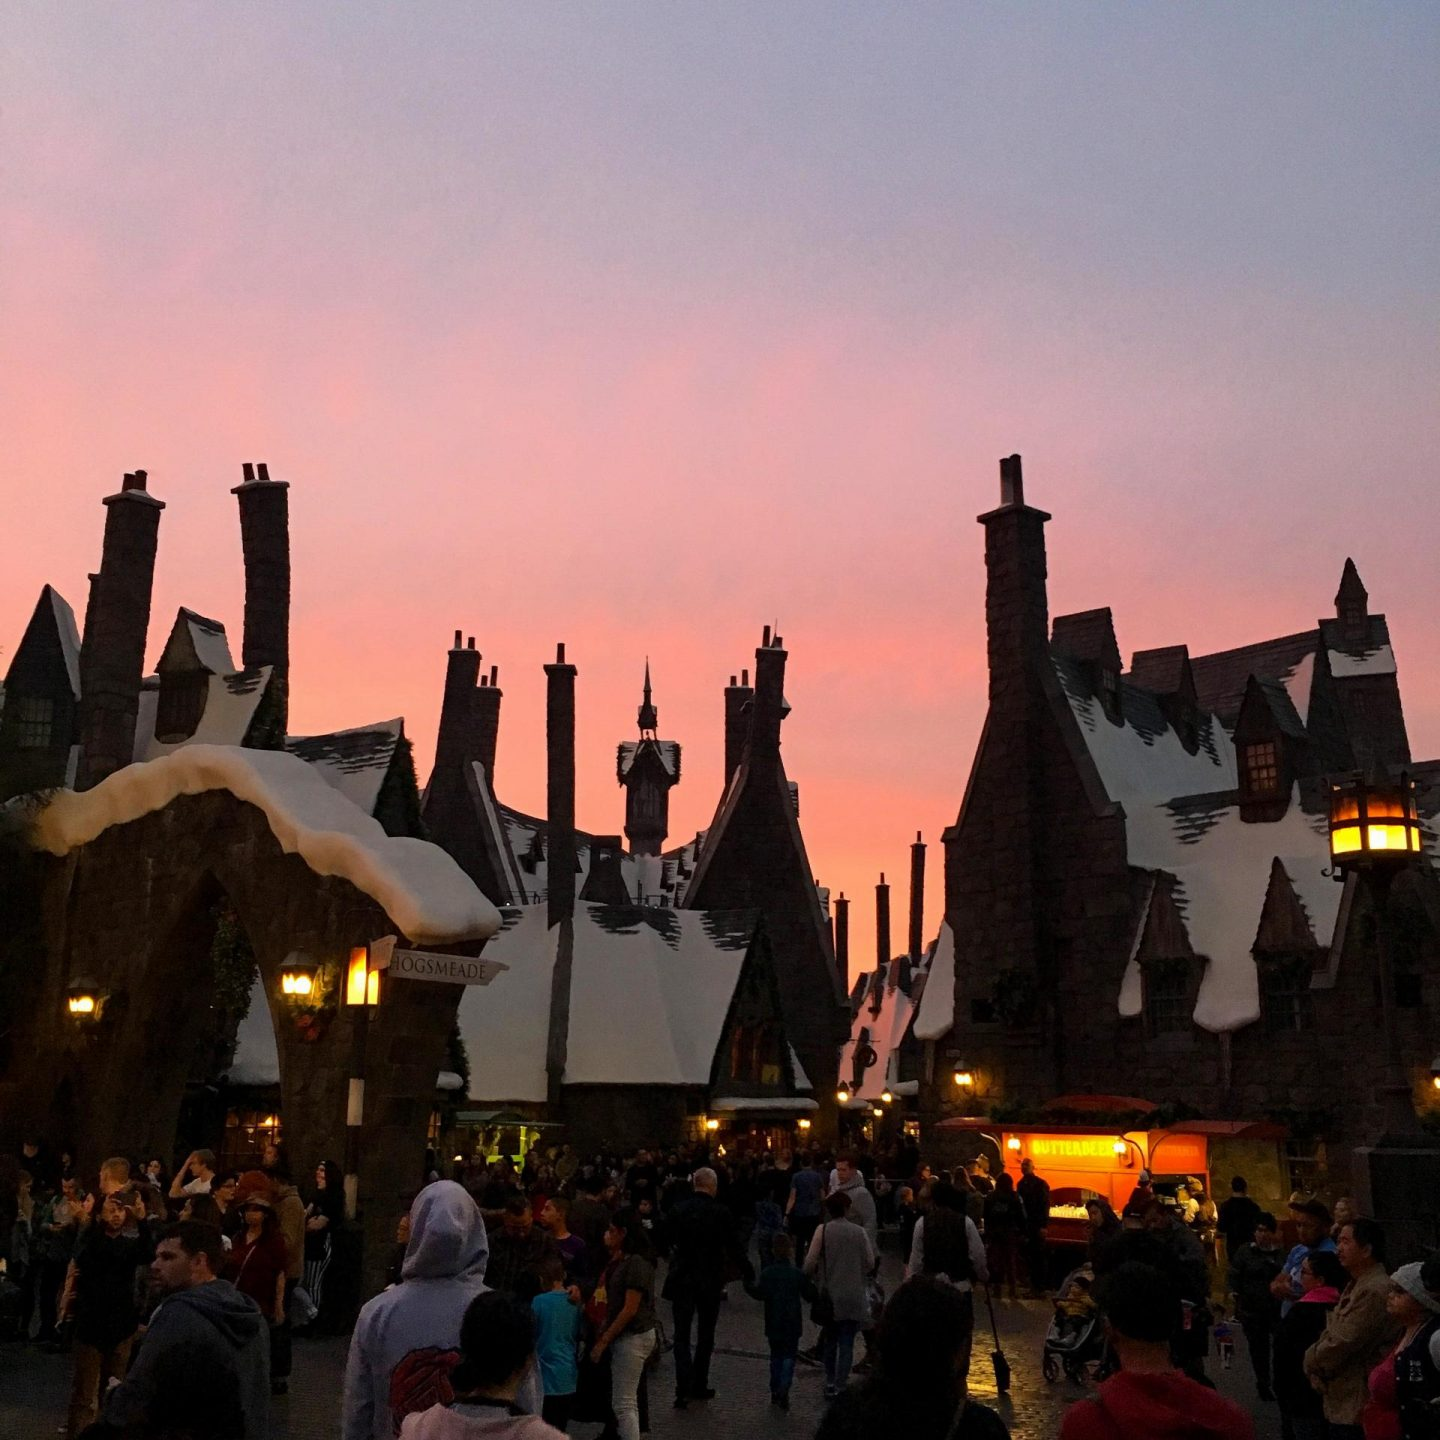 Sunset over Wizarding World of Harry Potter at Universal Studios, Hollywood with Attractiontix - Rachel Nicole UK Blogger